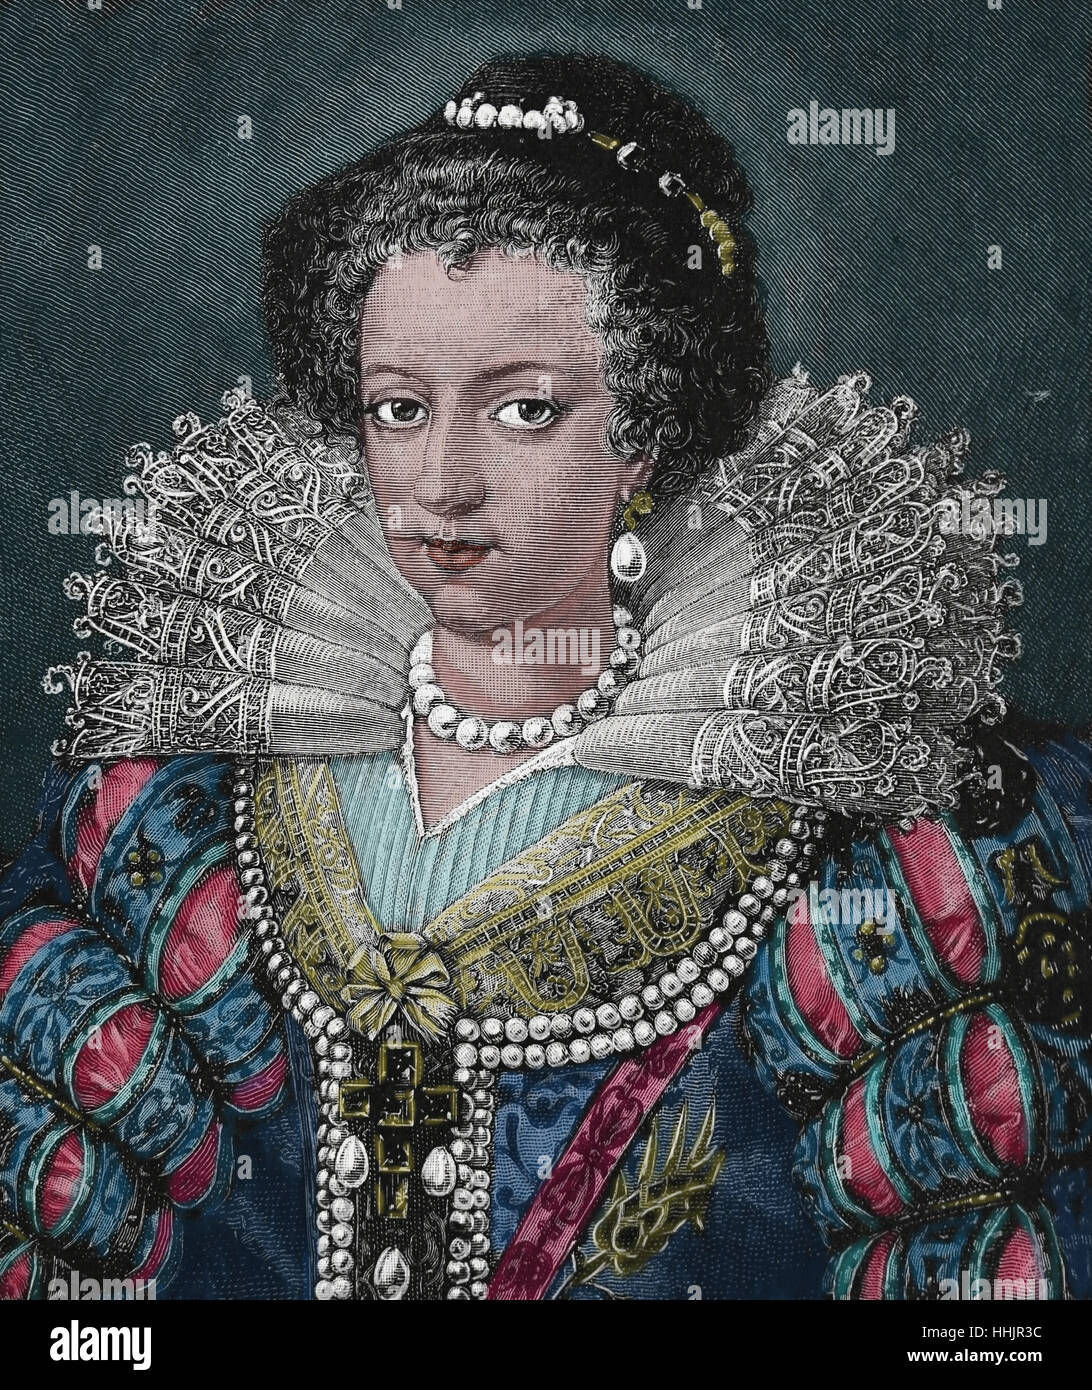 Elisabeth of Austria (1554-1592) Queen consort of France. Wife of King Charles IX. House of Habsburg. Engraving, - Stock Image